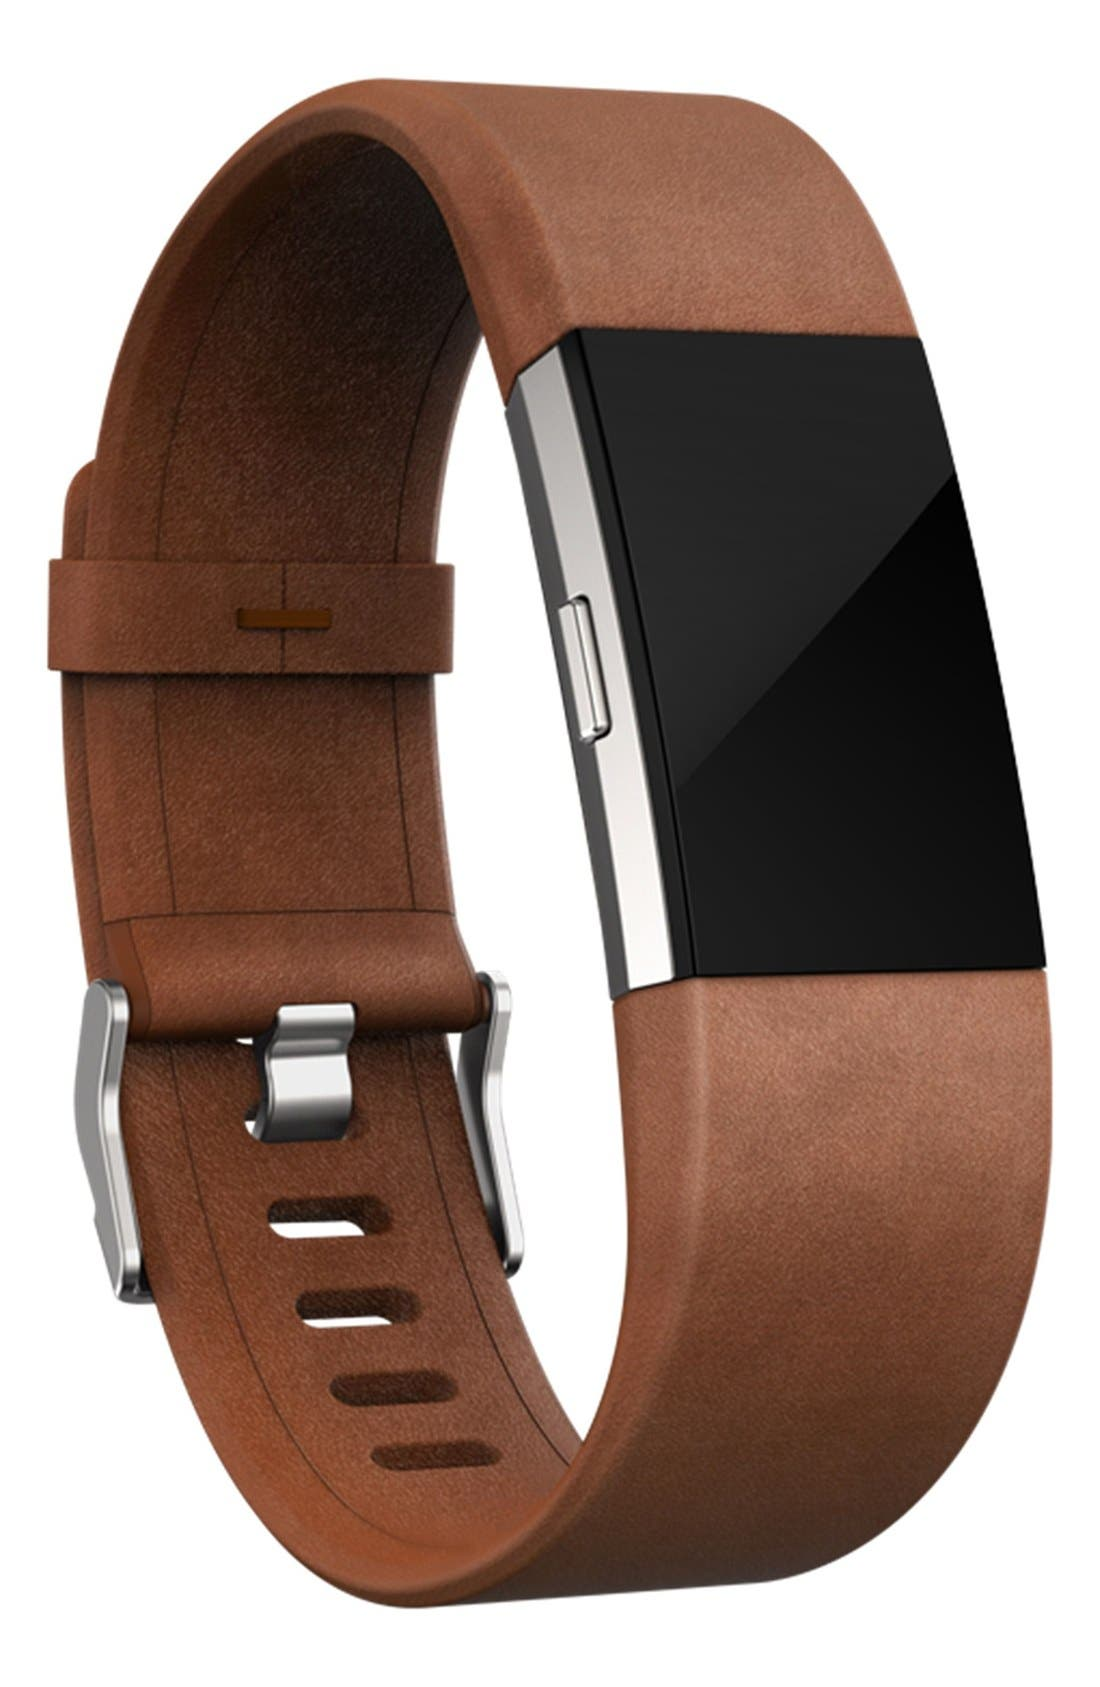 FITBIT,                             Charge 2 Leather Accessory Band,                             Alternate thumbnail 5, color,                             200